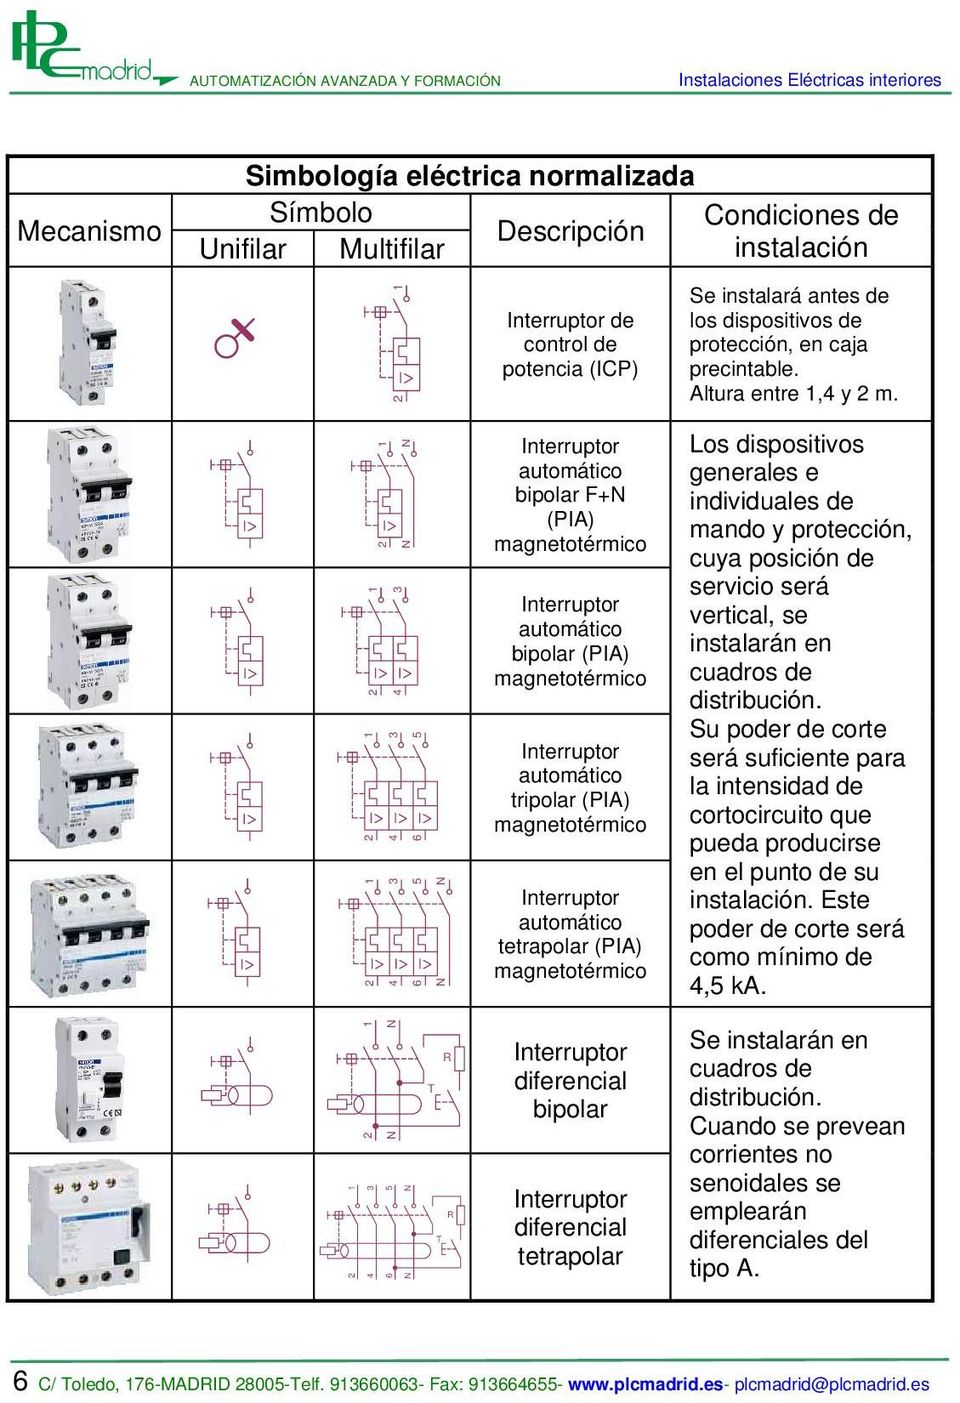 Manual t cnico del electricista pdf for Interruptor magnetotermico tipos